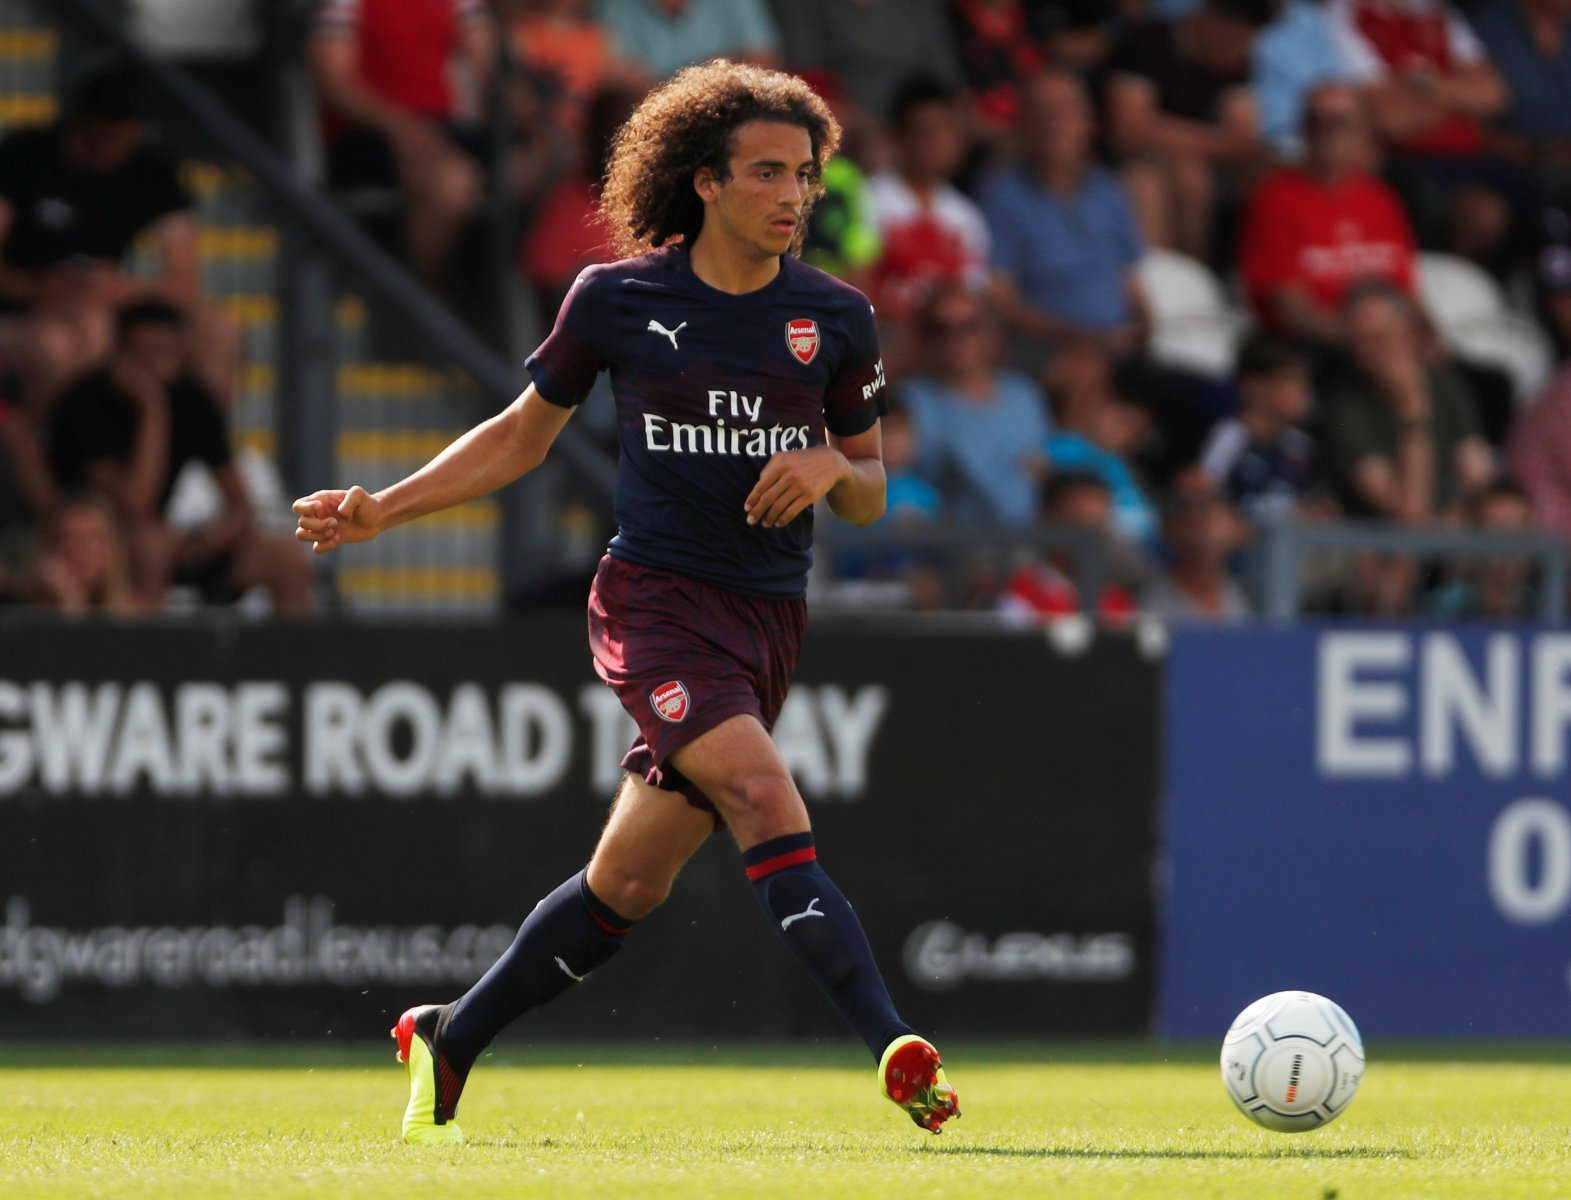 Arsenal fans are loving Matteo Guendouzi after Chelsea game